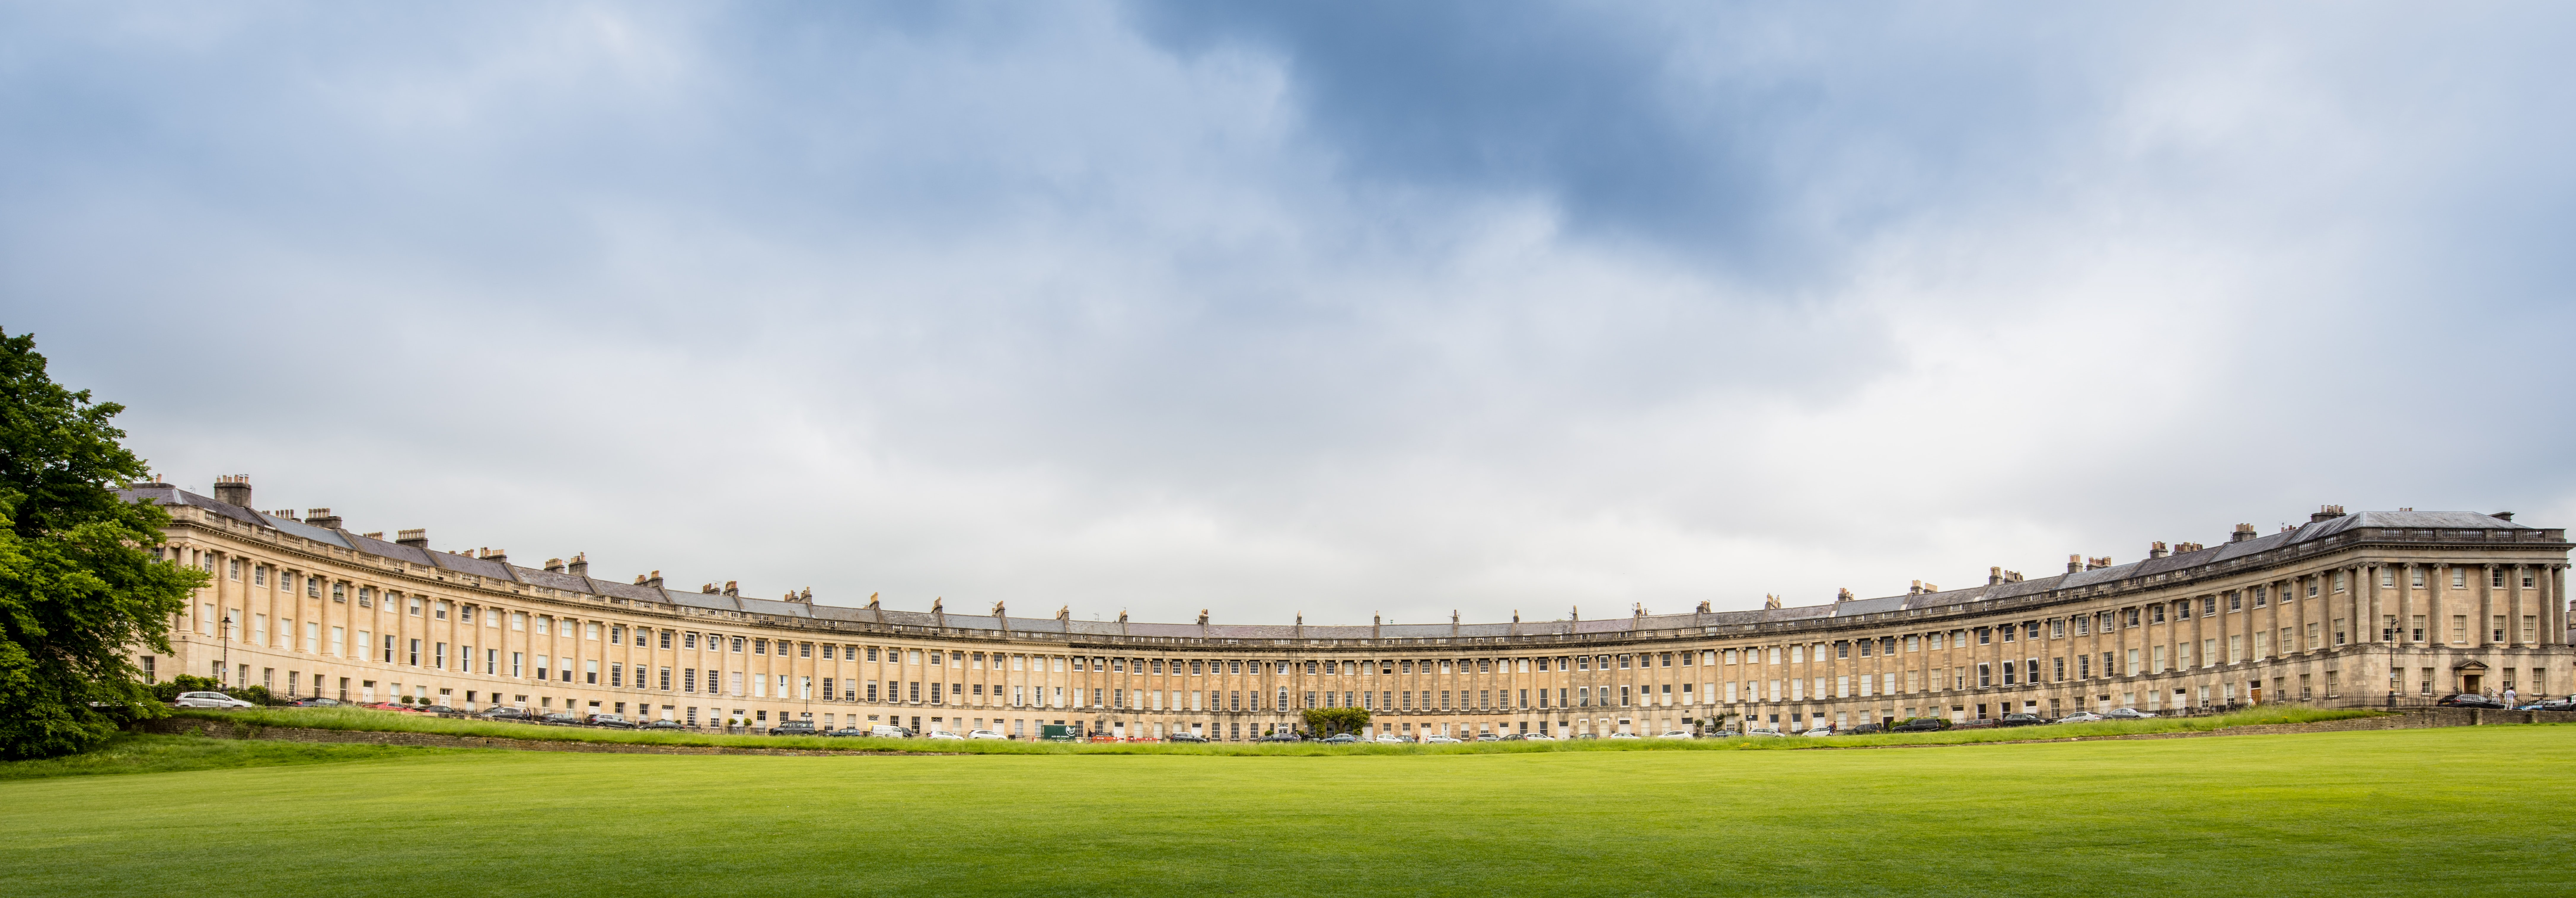 landscape photo of green lawn grass in front of historical building